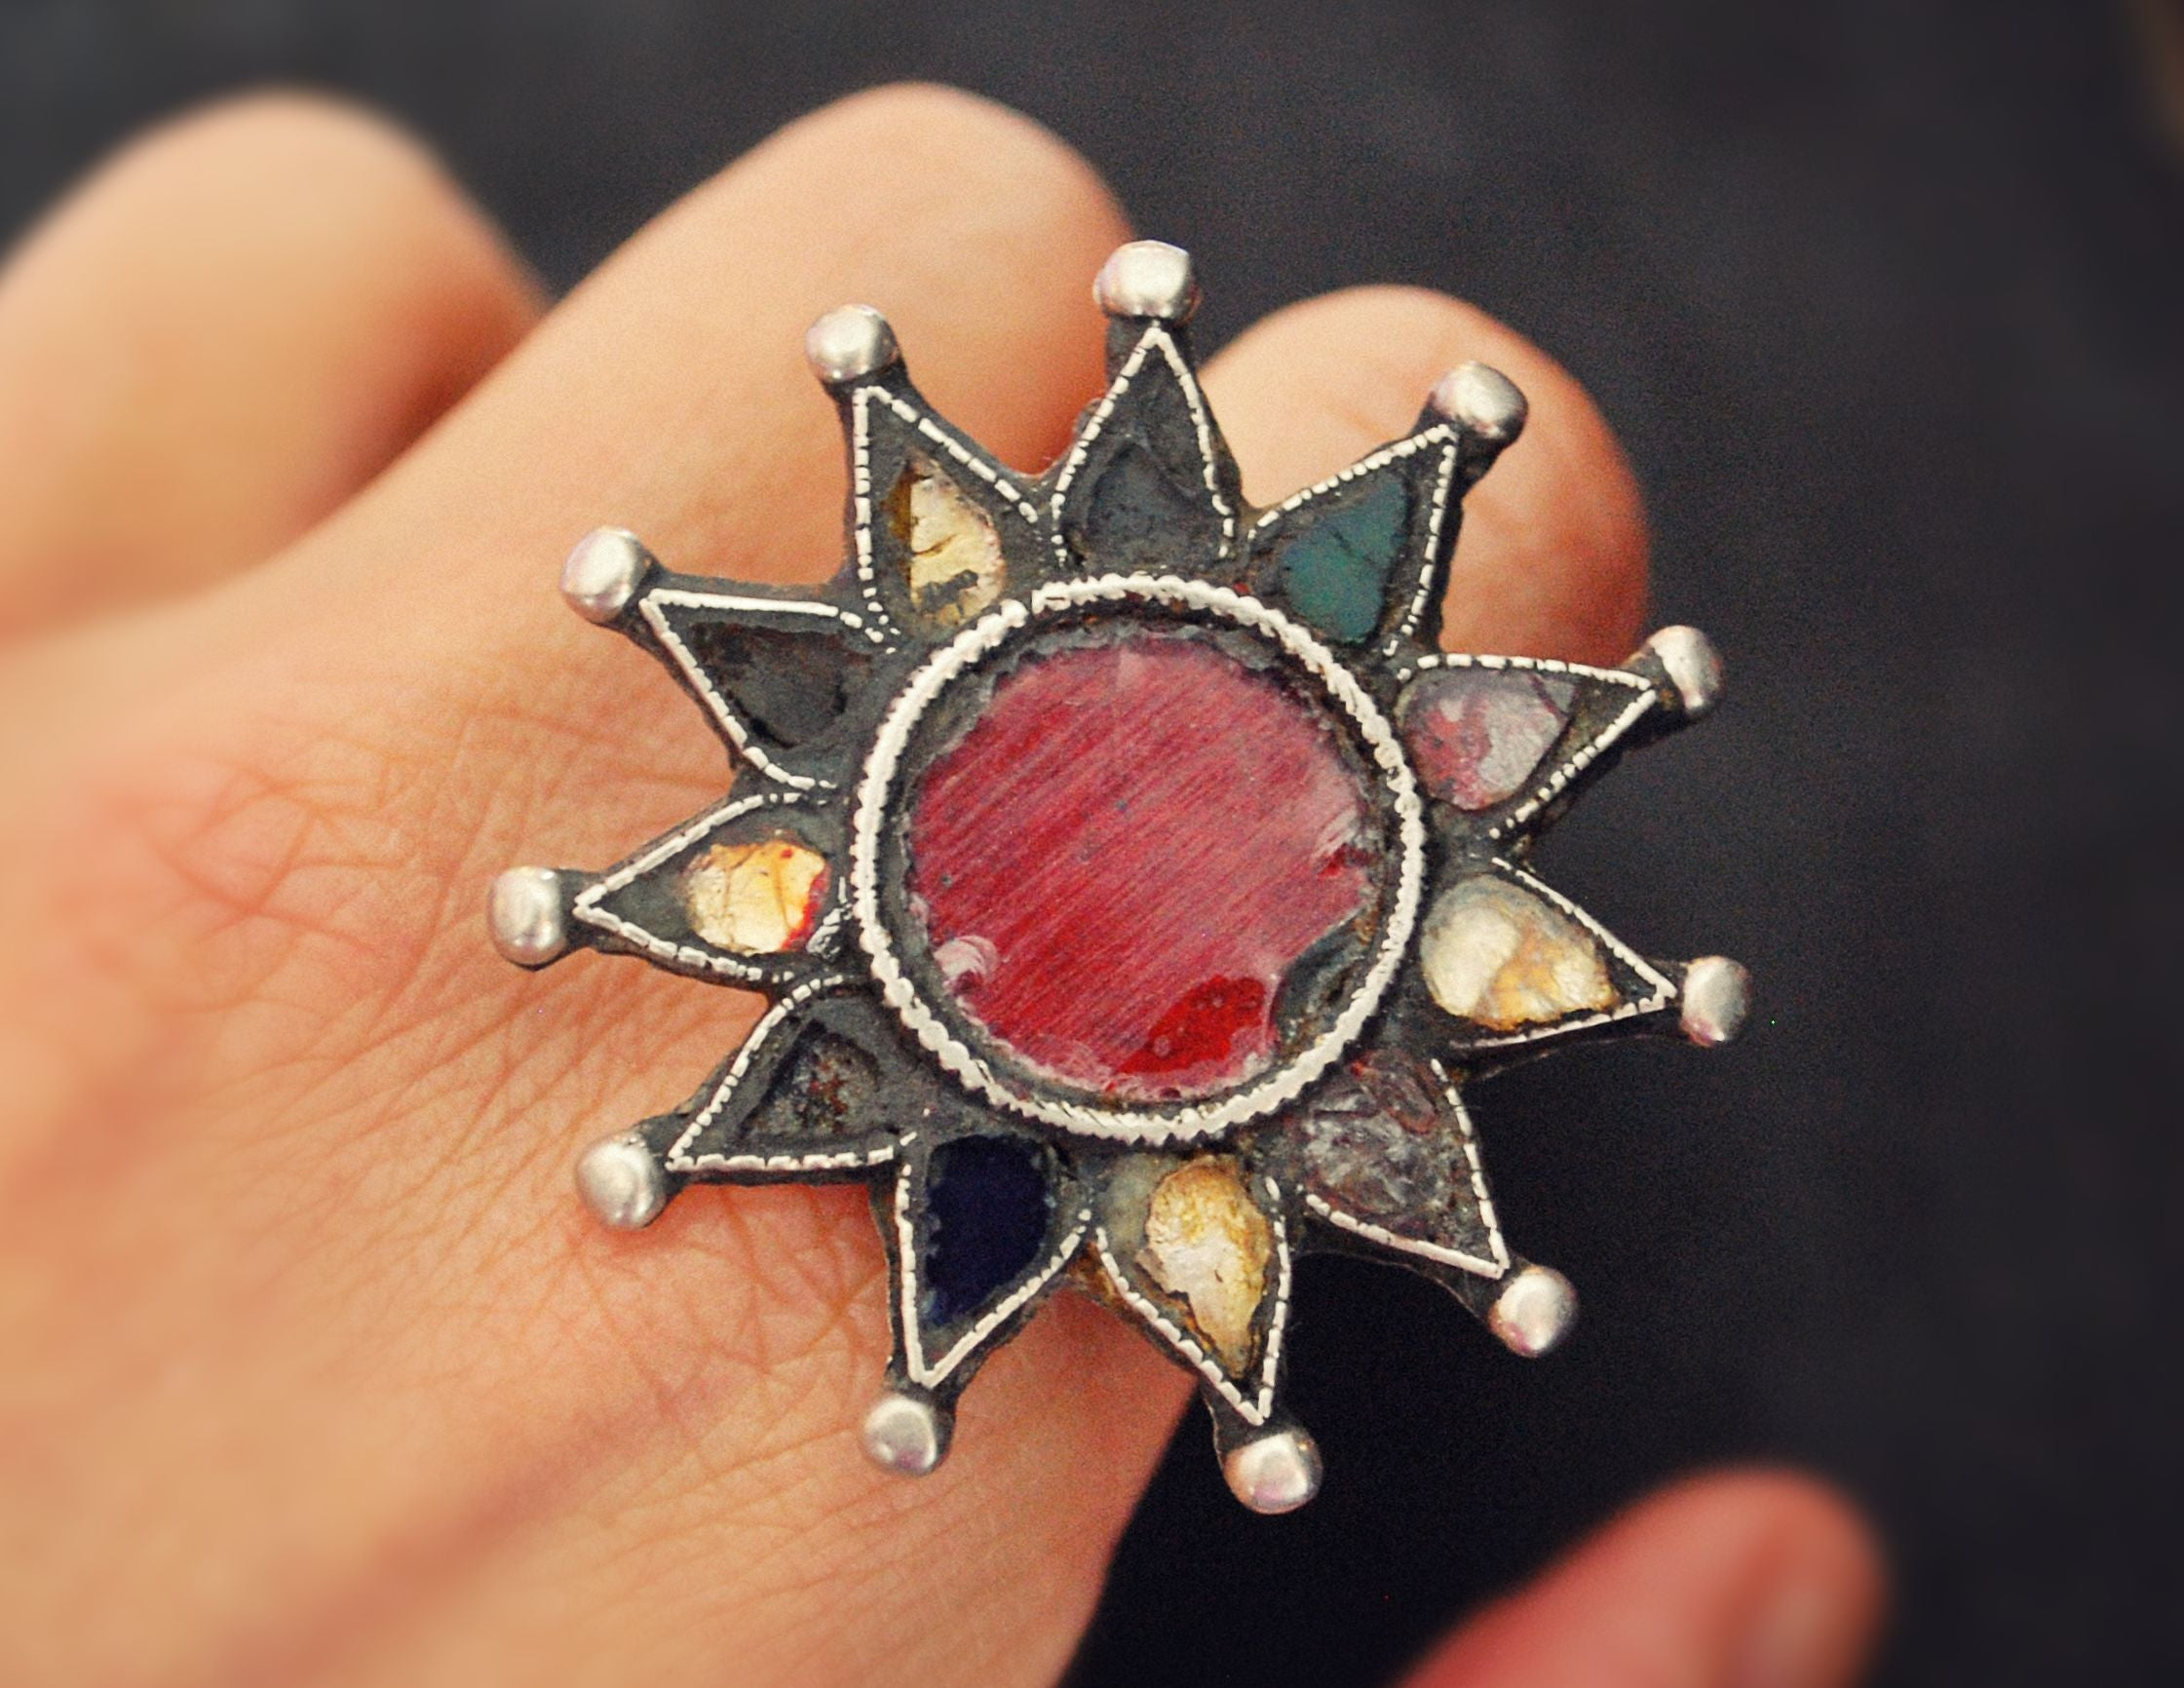 Huge Afghani Star Ring with Glass - Size 8.5